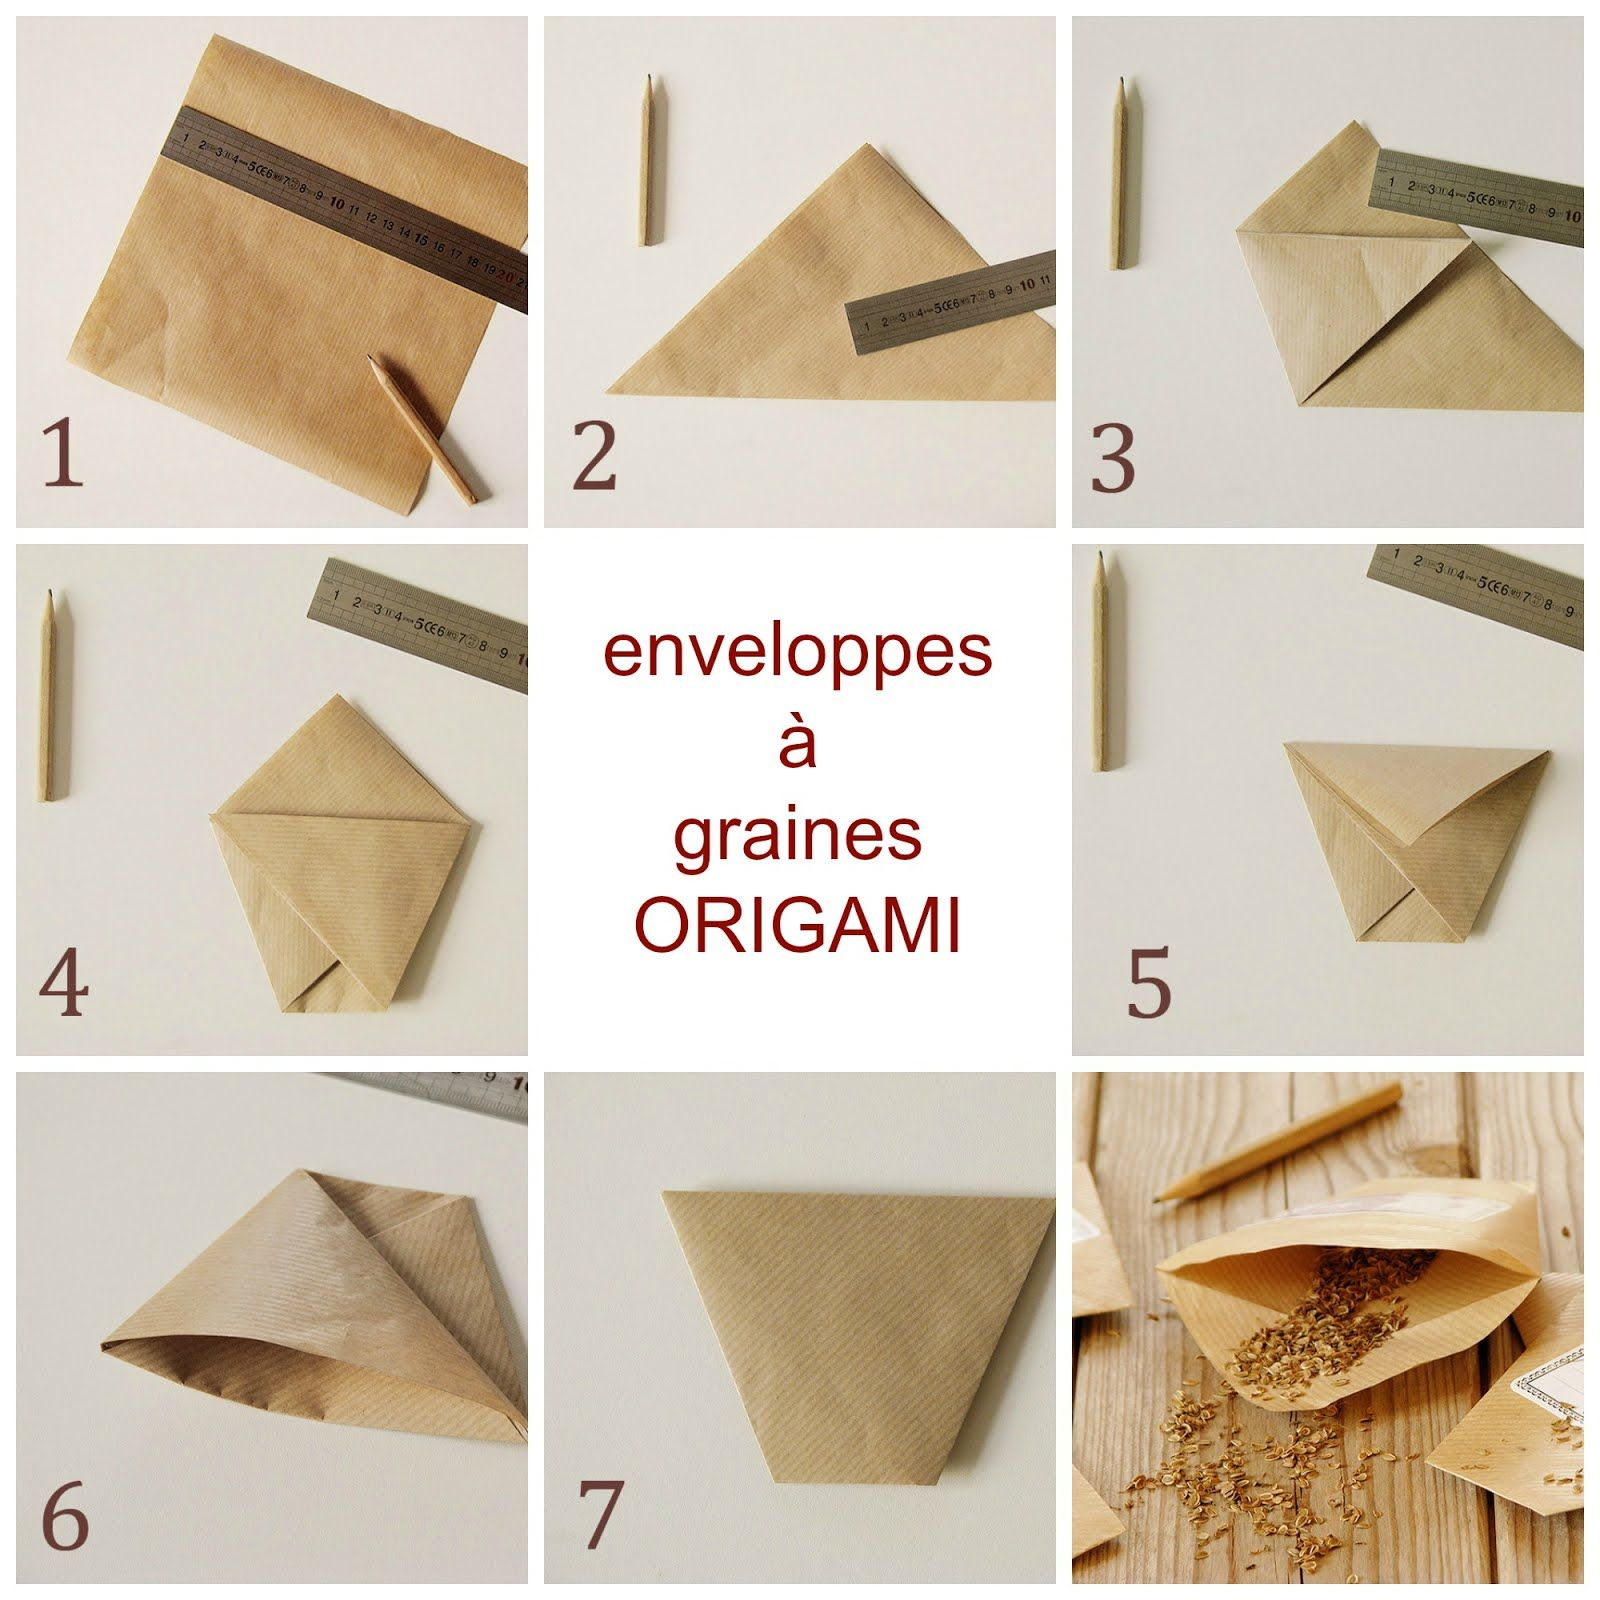 enveloppes a graines en origami origami pinterest sachet origami et potager. Black Bedroom Furniture Sets. Home Design Ideas